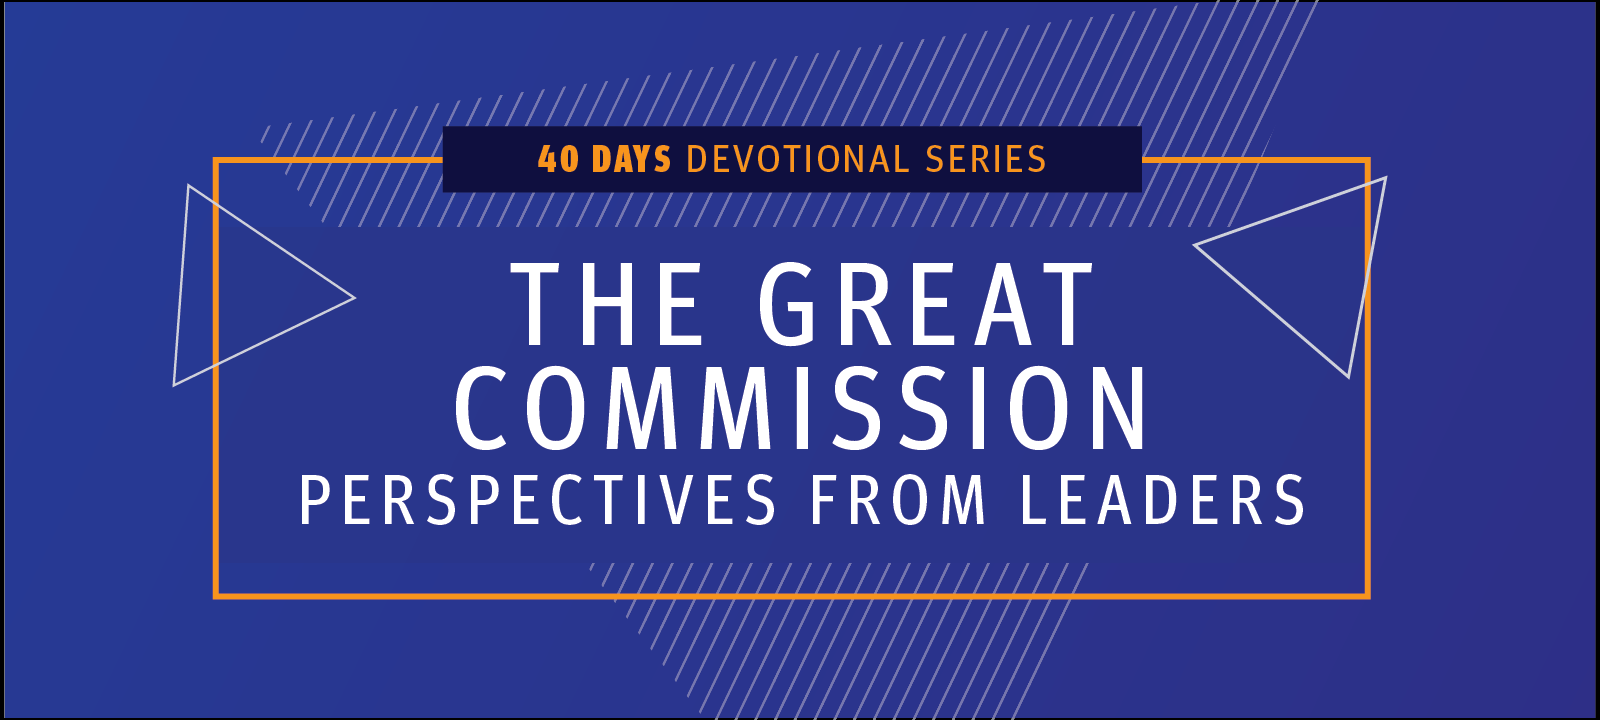 You're Invited! Join Our 40-Day Devotional Series